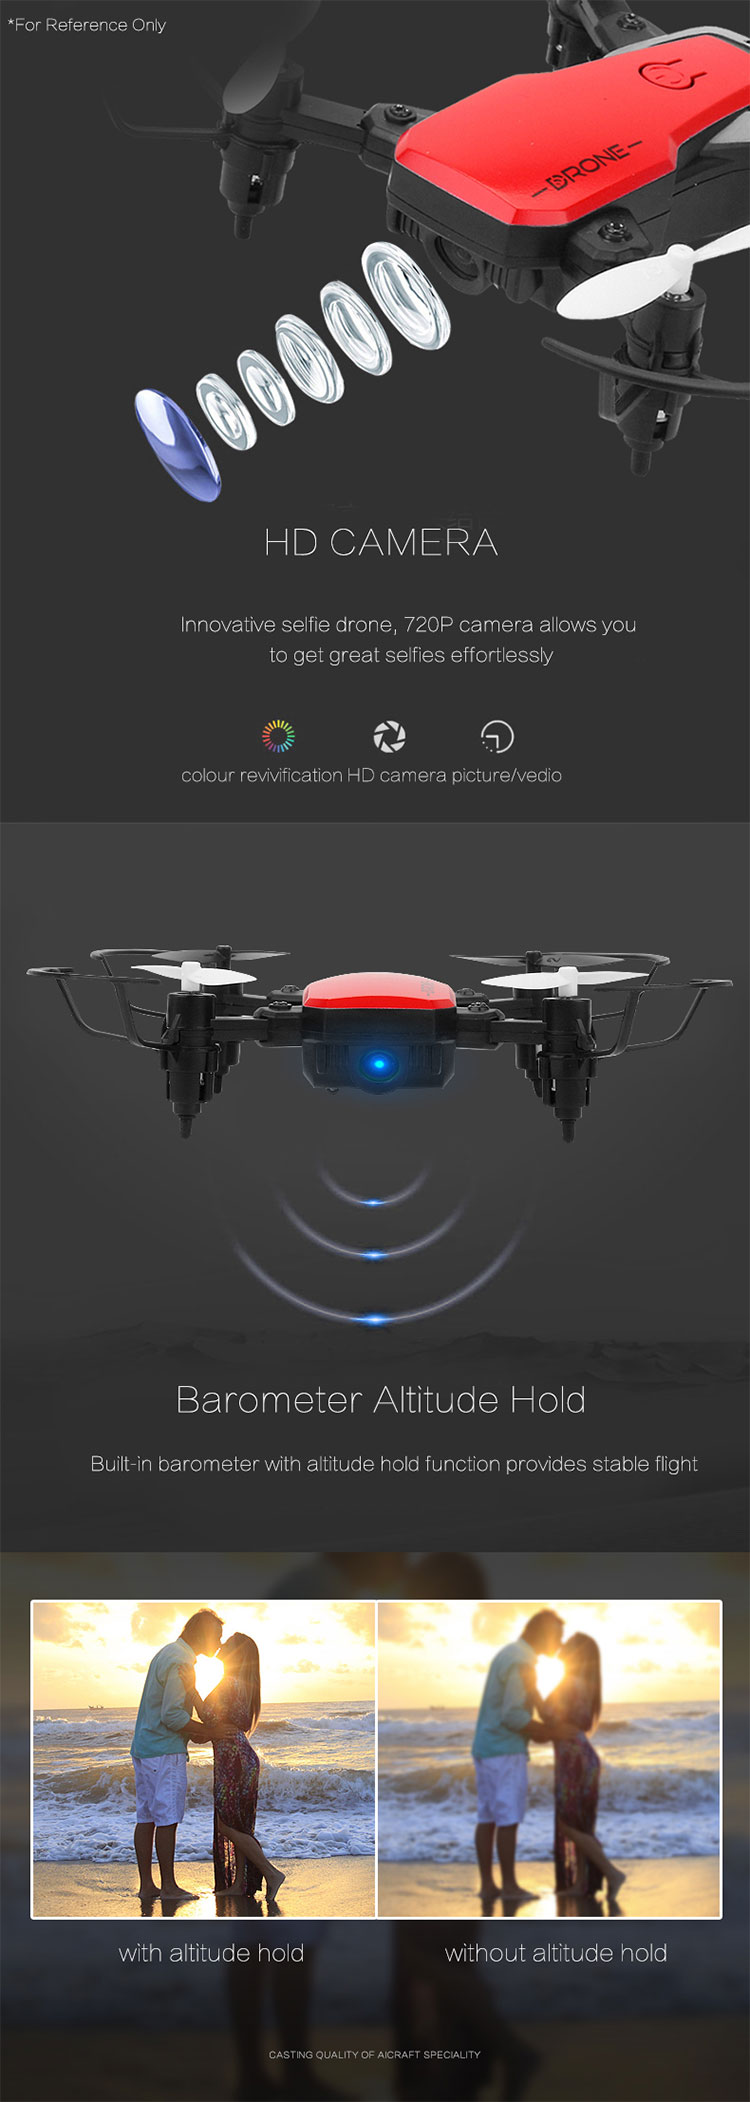 FPV 2.4GHz Folding Drone Quadcopter With HD Wi-Fi Camera Live Video Feed